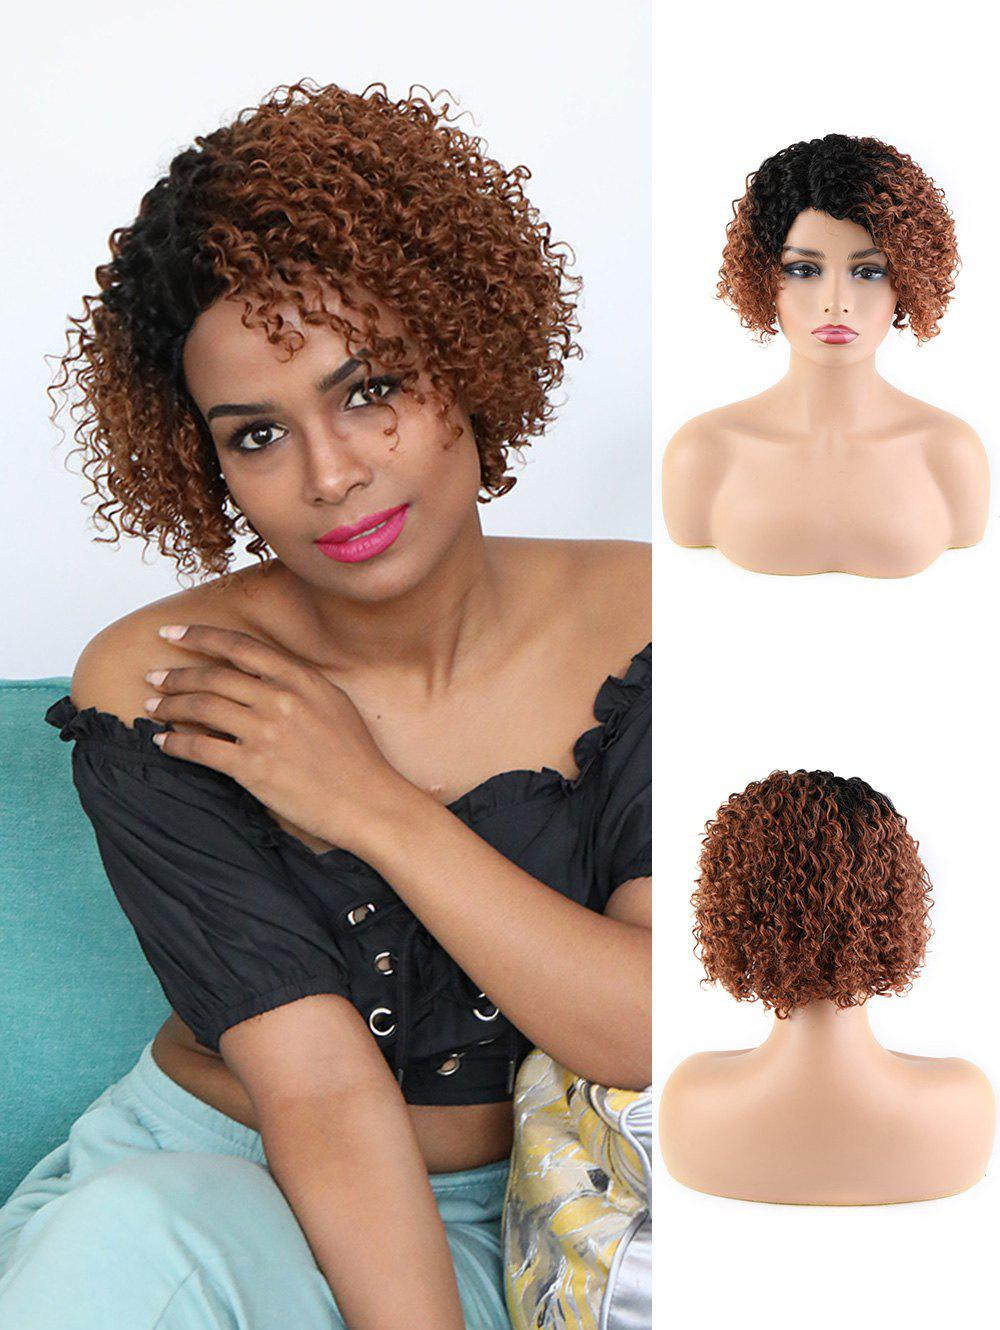 Human Hair Ombre Short Curly Side Part Wig - BROWN 8INCH